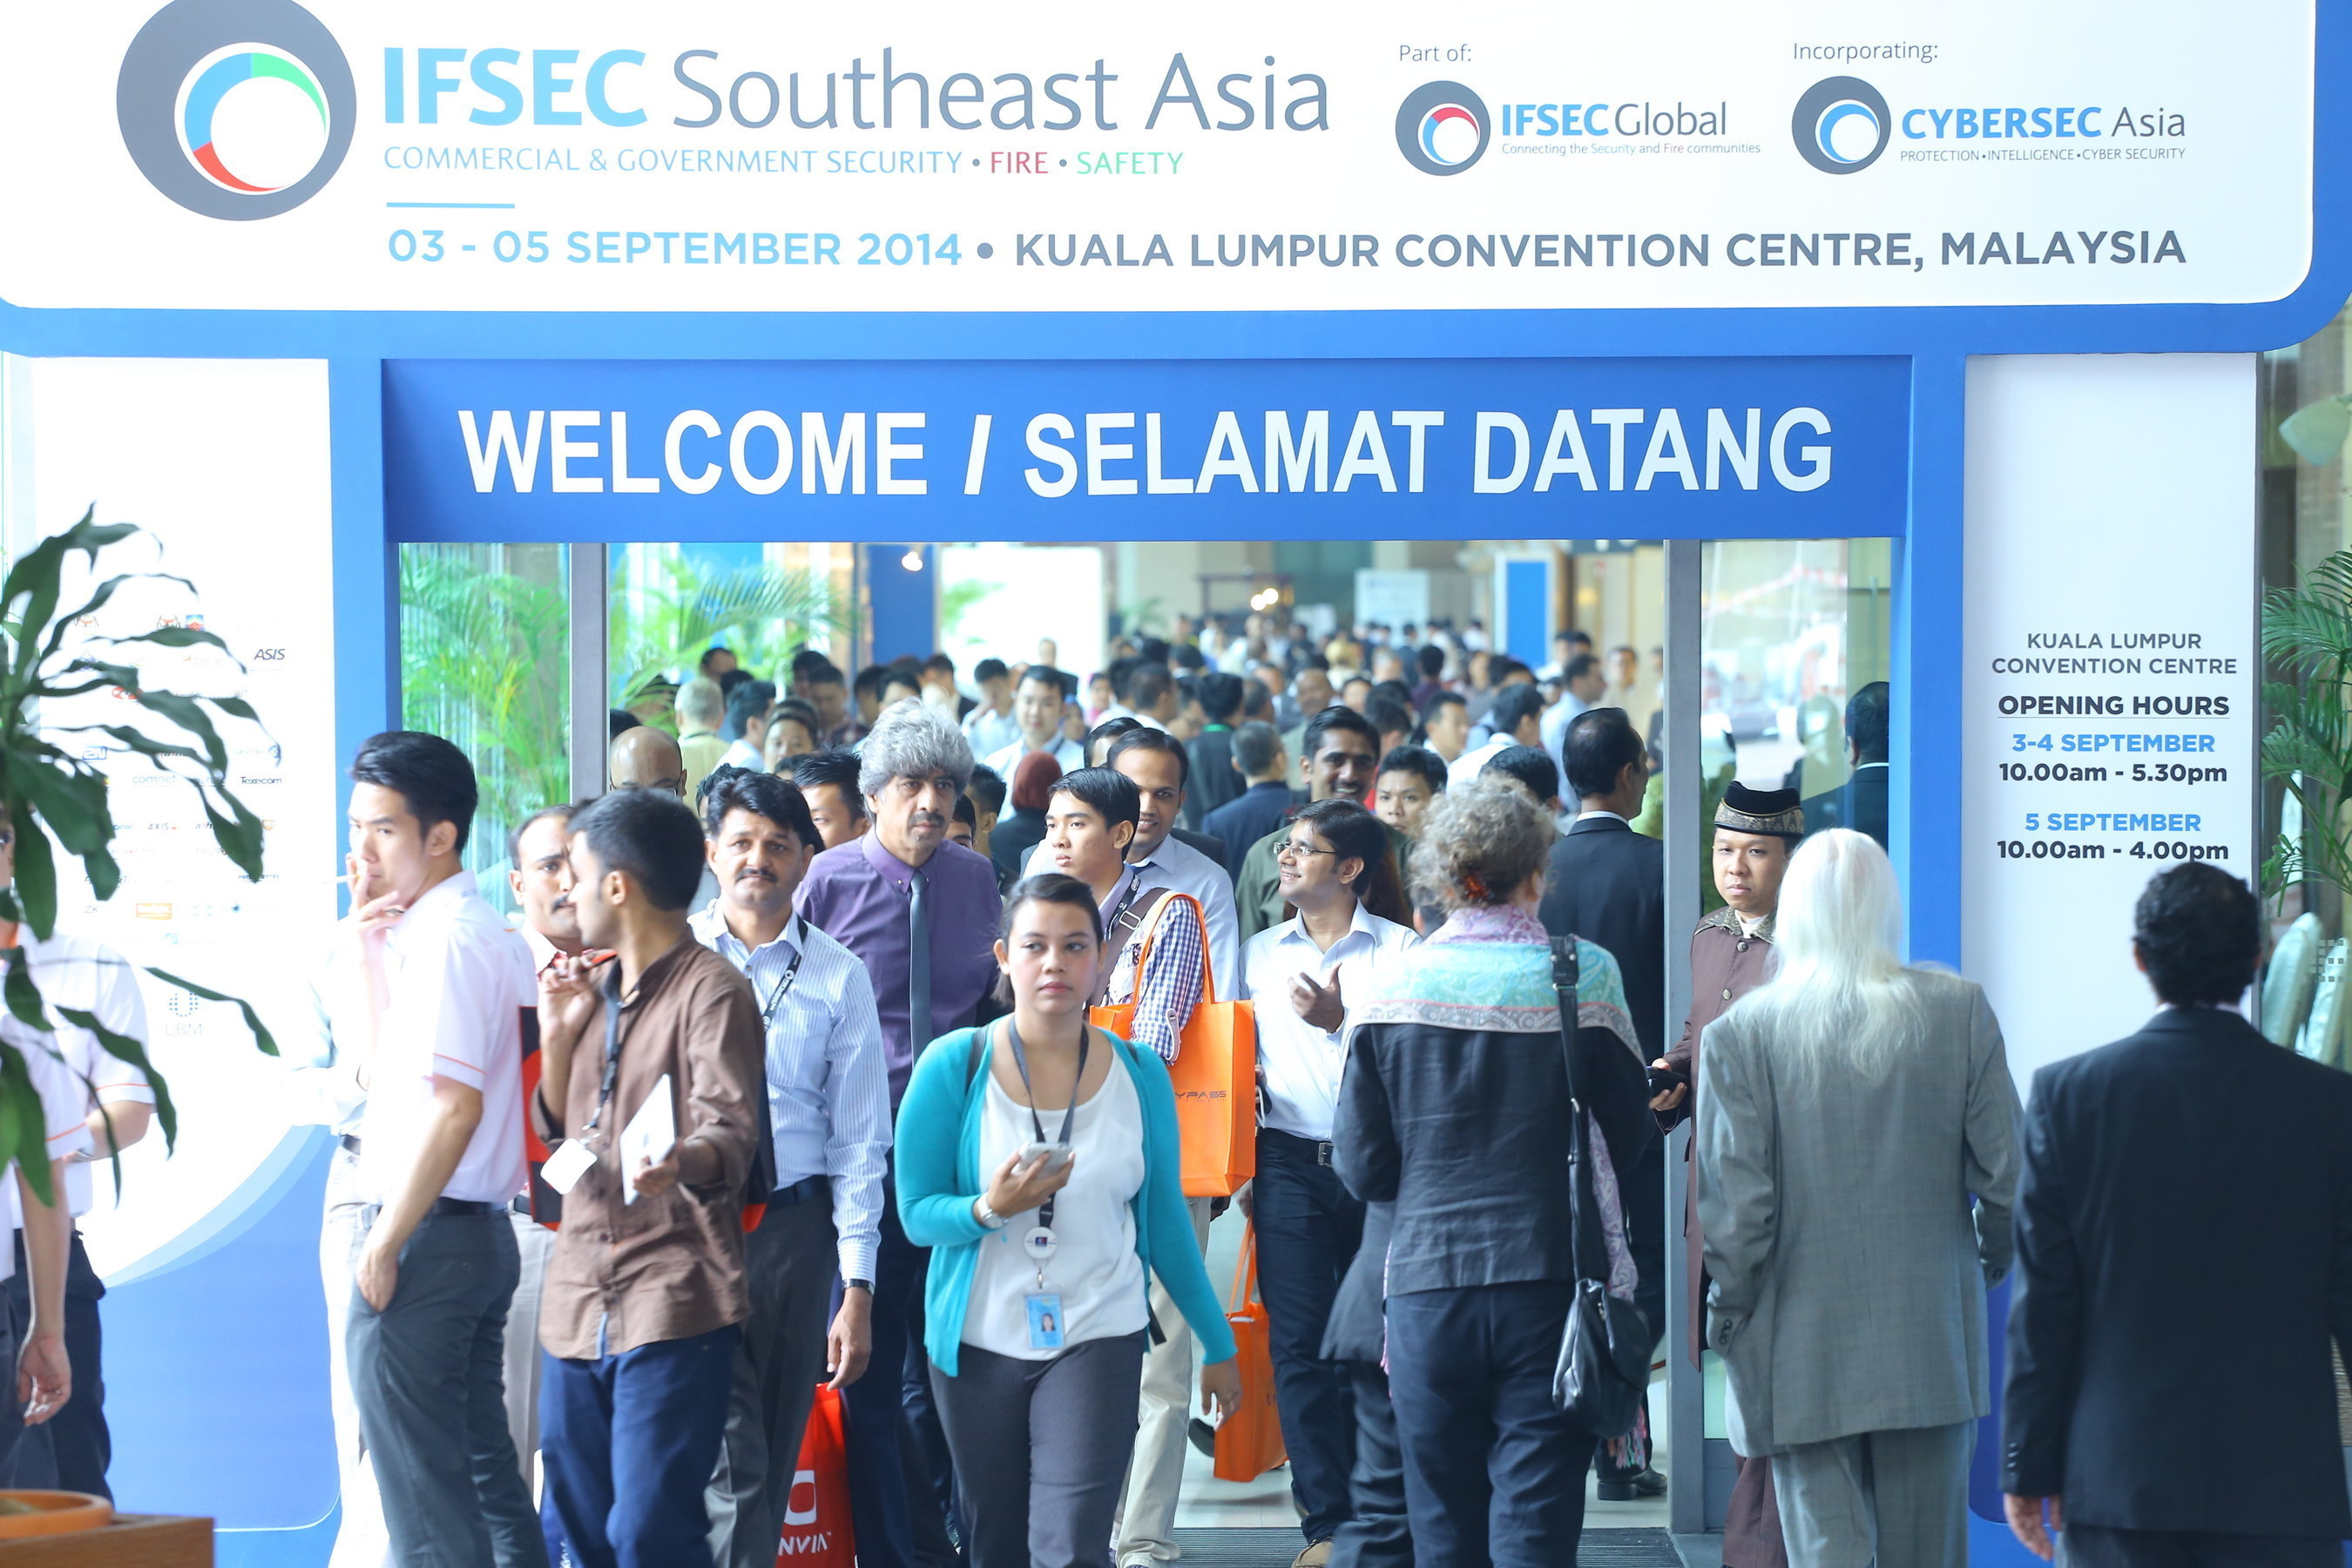 IFSEC Southeast Asia 2015 - The Region's Leading Security, Fire and Safety Event